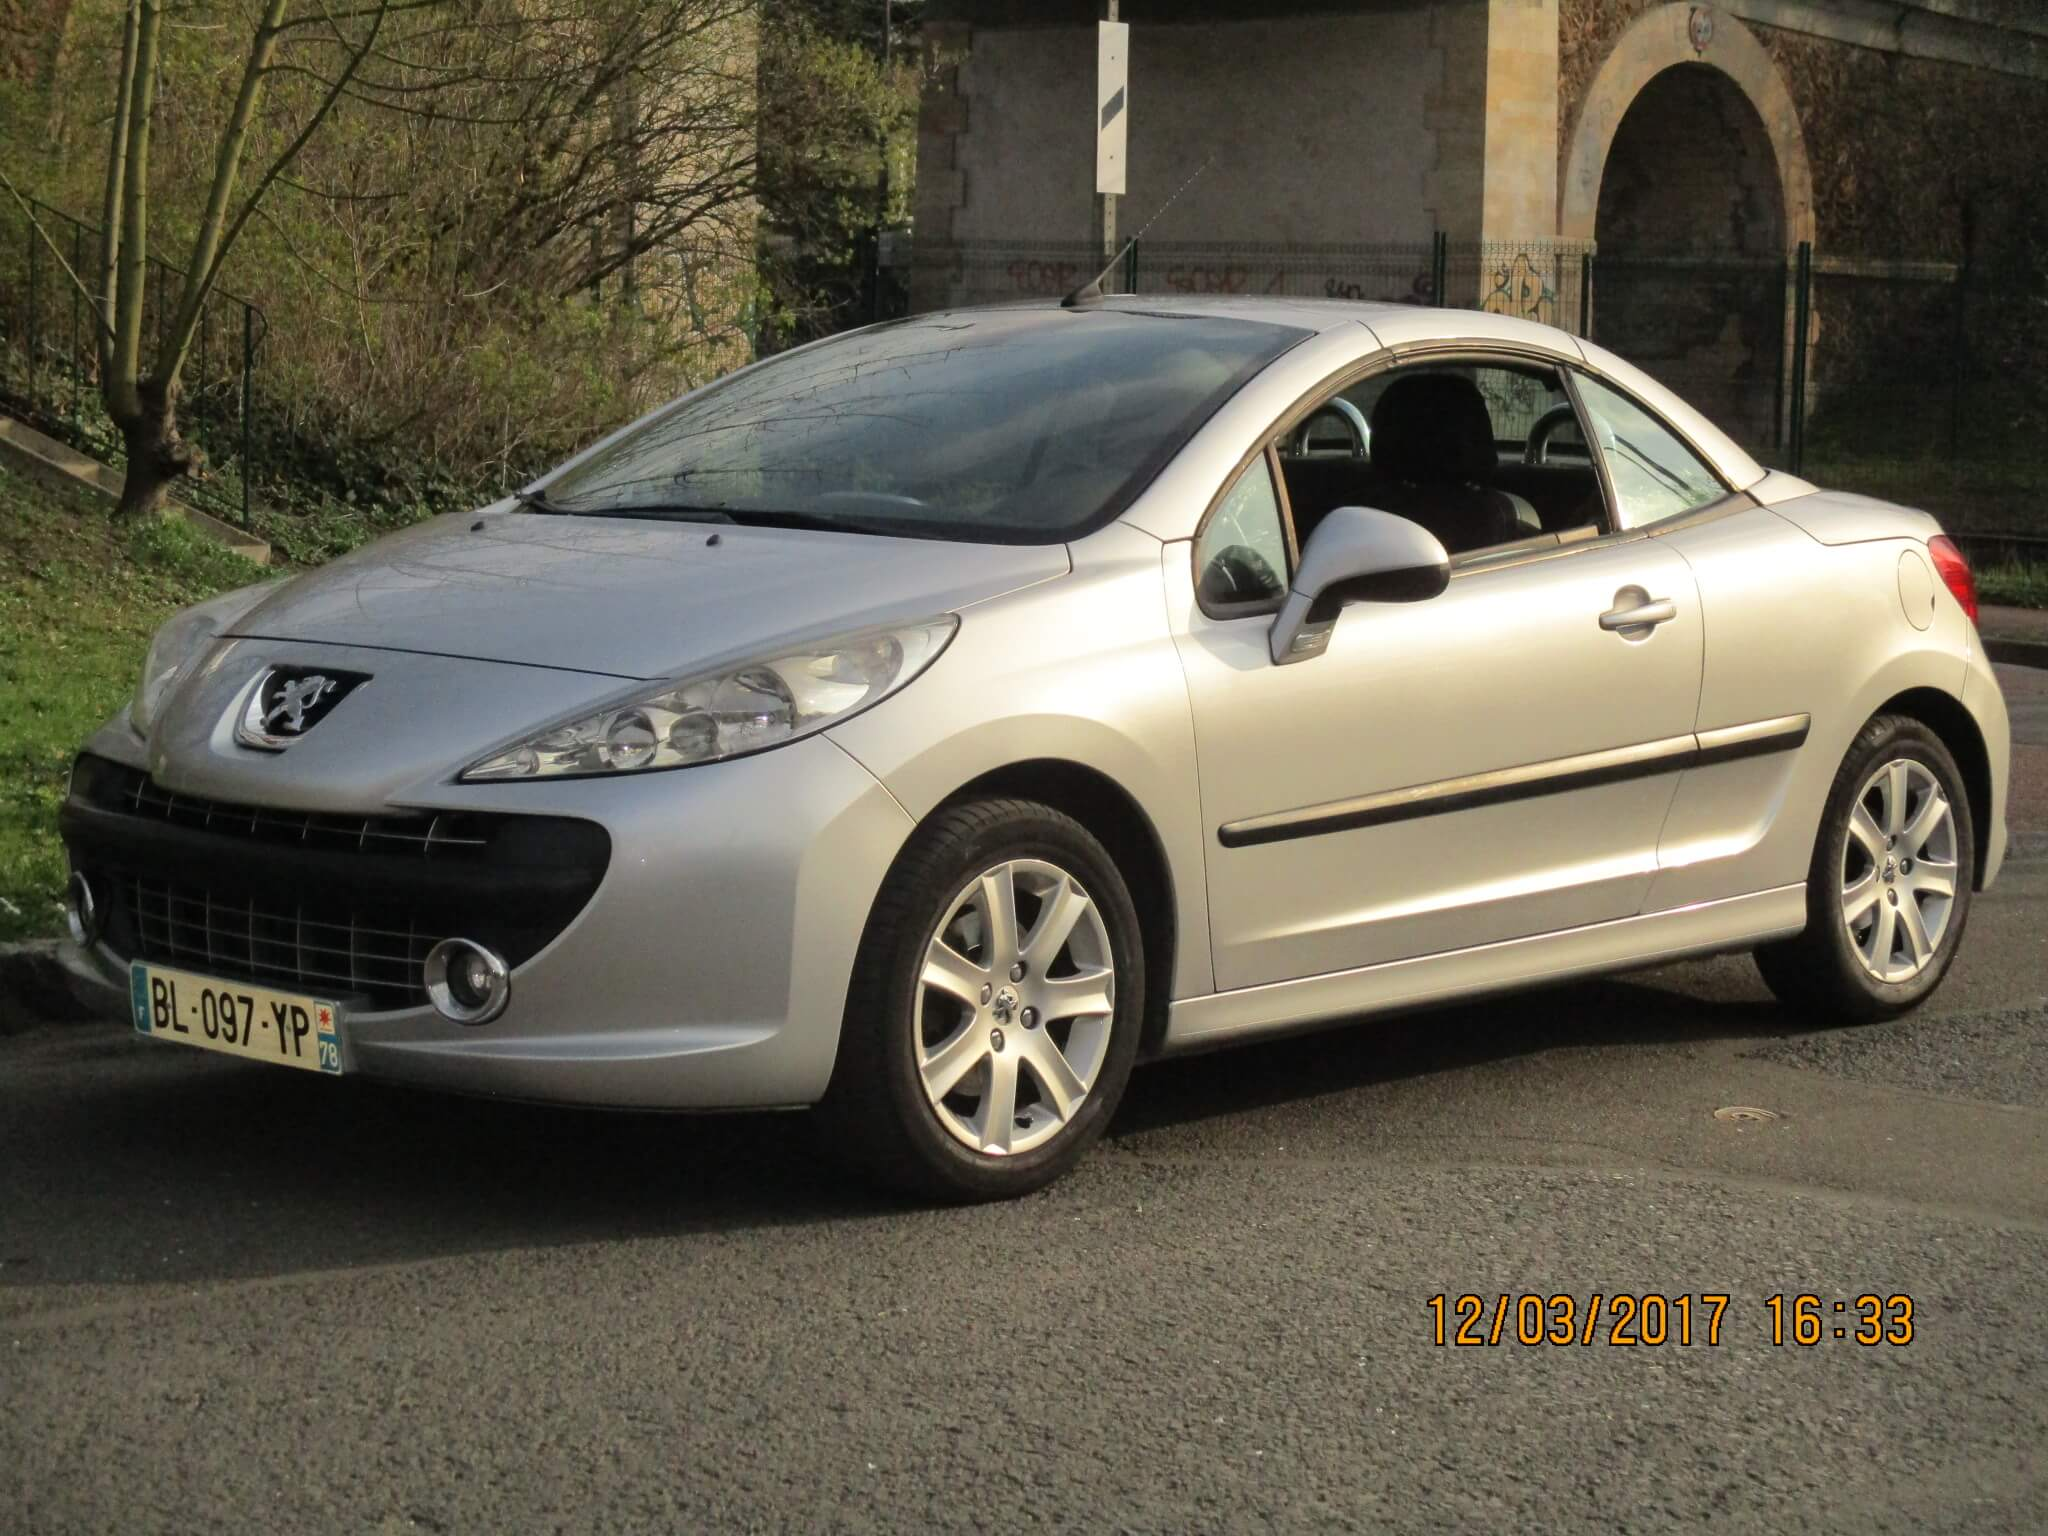 voiture occasion peugeot 207 cc labellis e vendre. Black Bedroom Furniture Sets. Home Design Ideas